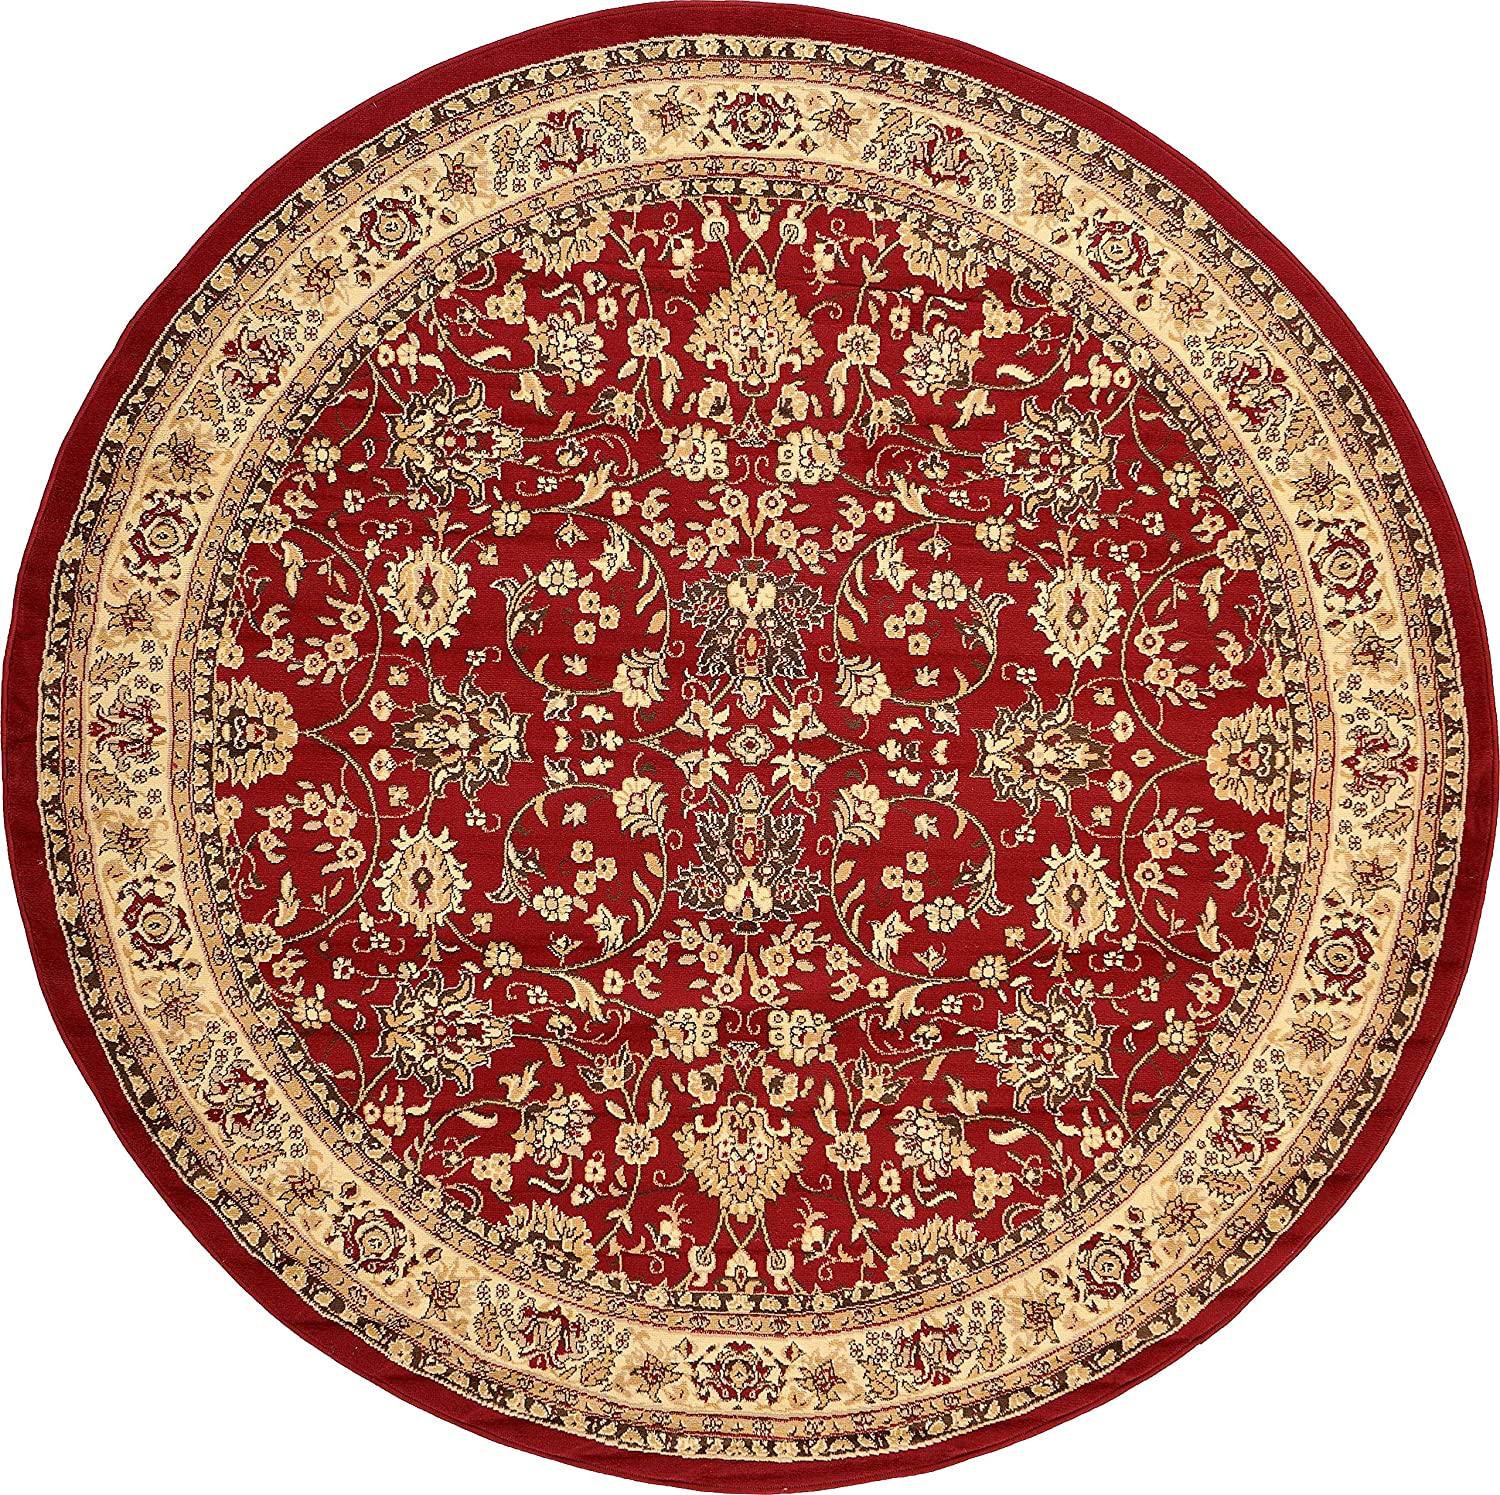 Unique Loom Kashan Collection Traditional Floral Overall Pattern with Border Burgundy Round Rug (8' 0 x 8' 0)